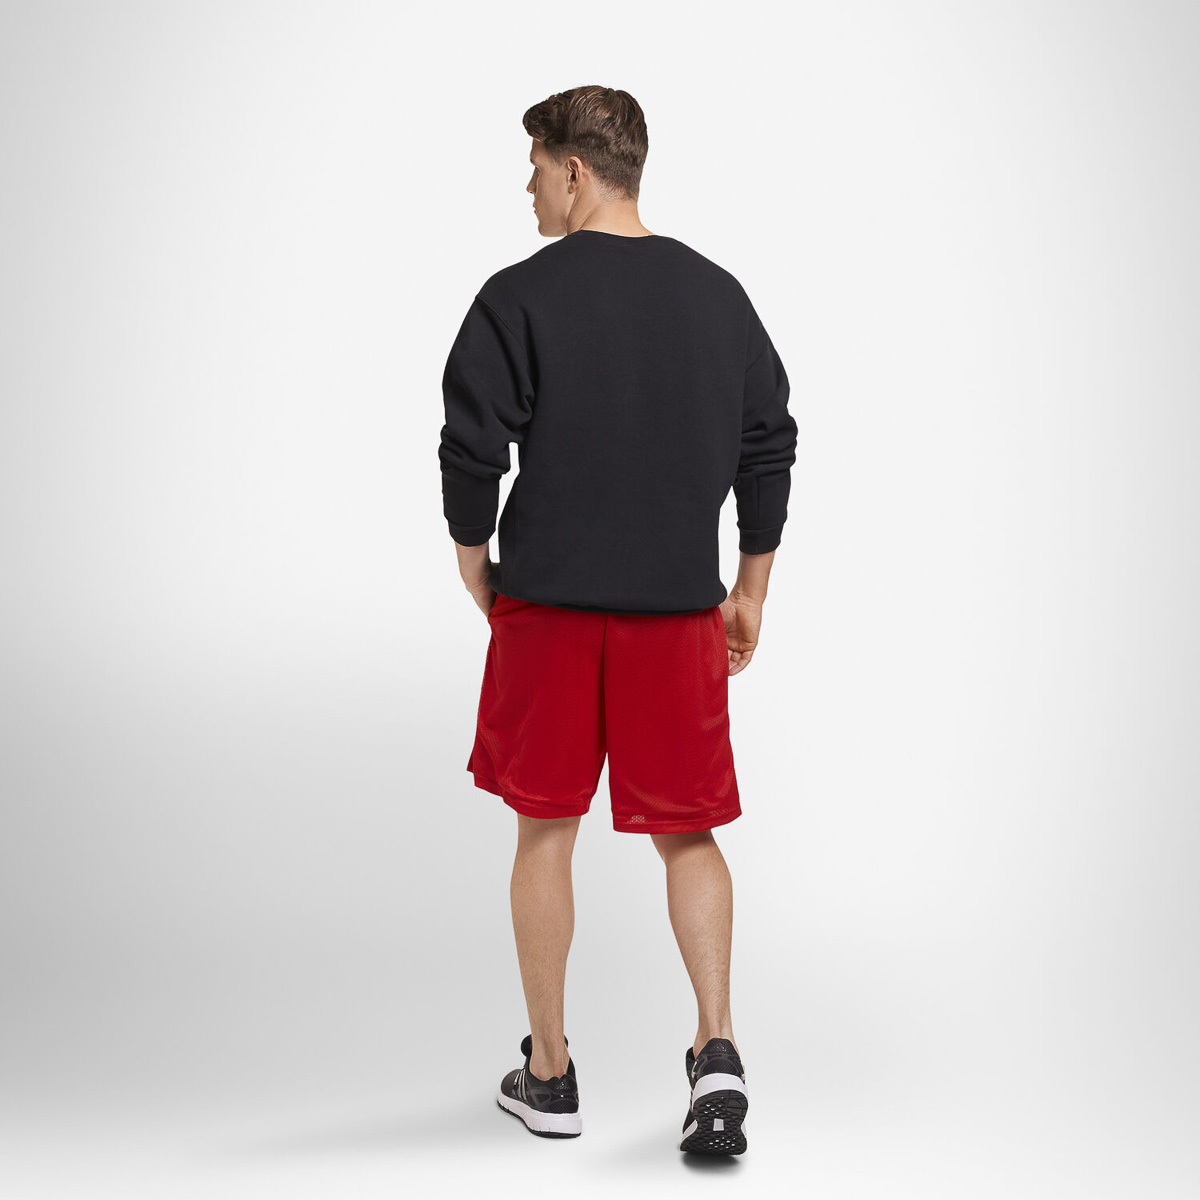 Russell-Athletic-Mens-Shorts-With-Pockets-Mesh-Moisture-Wicking-Gym-Activewear thumbnail 6